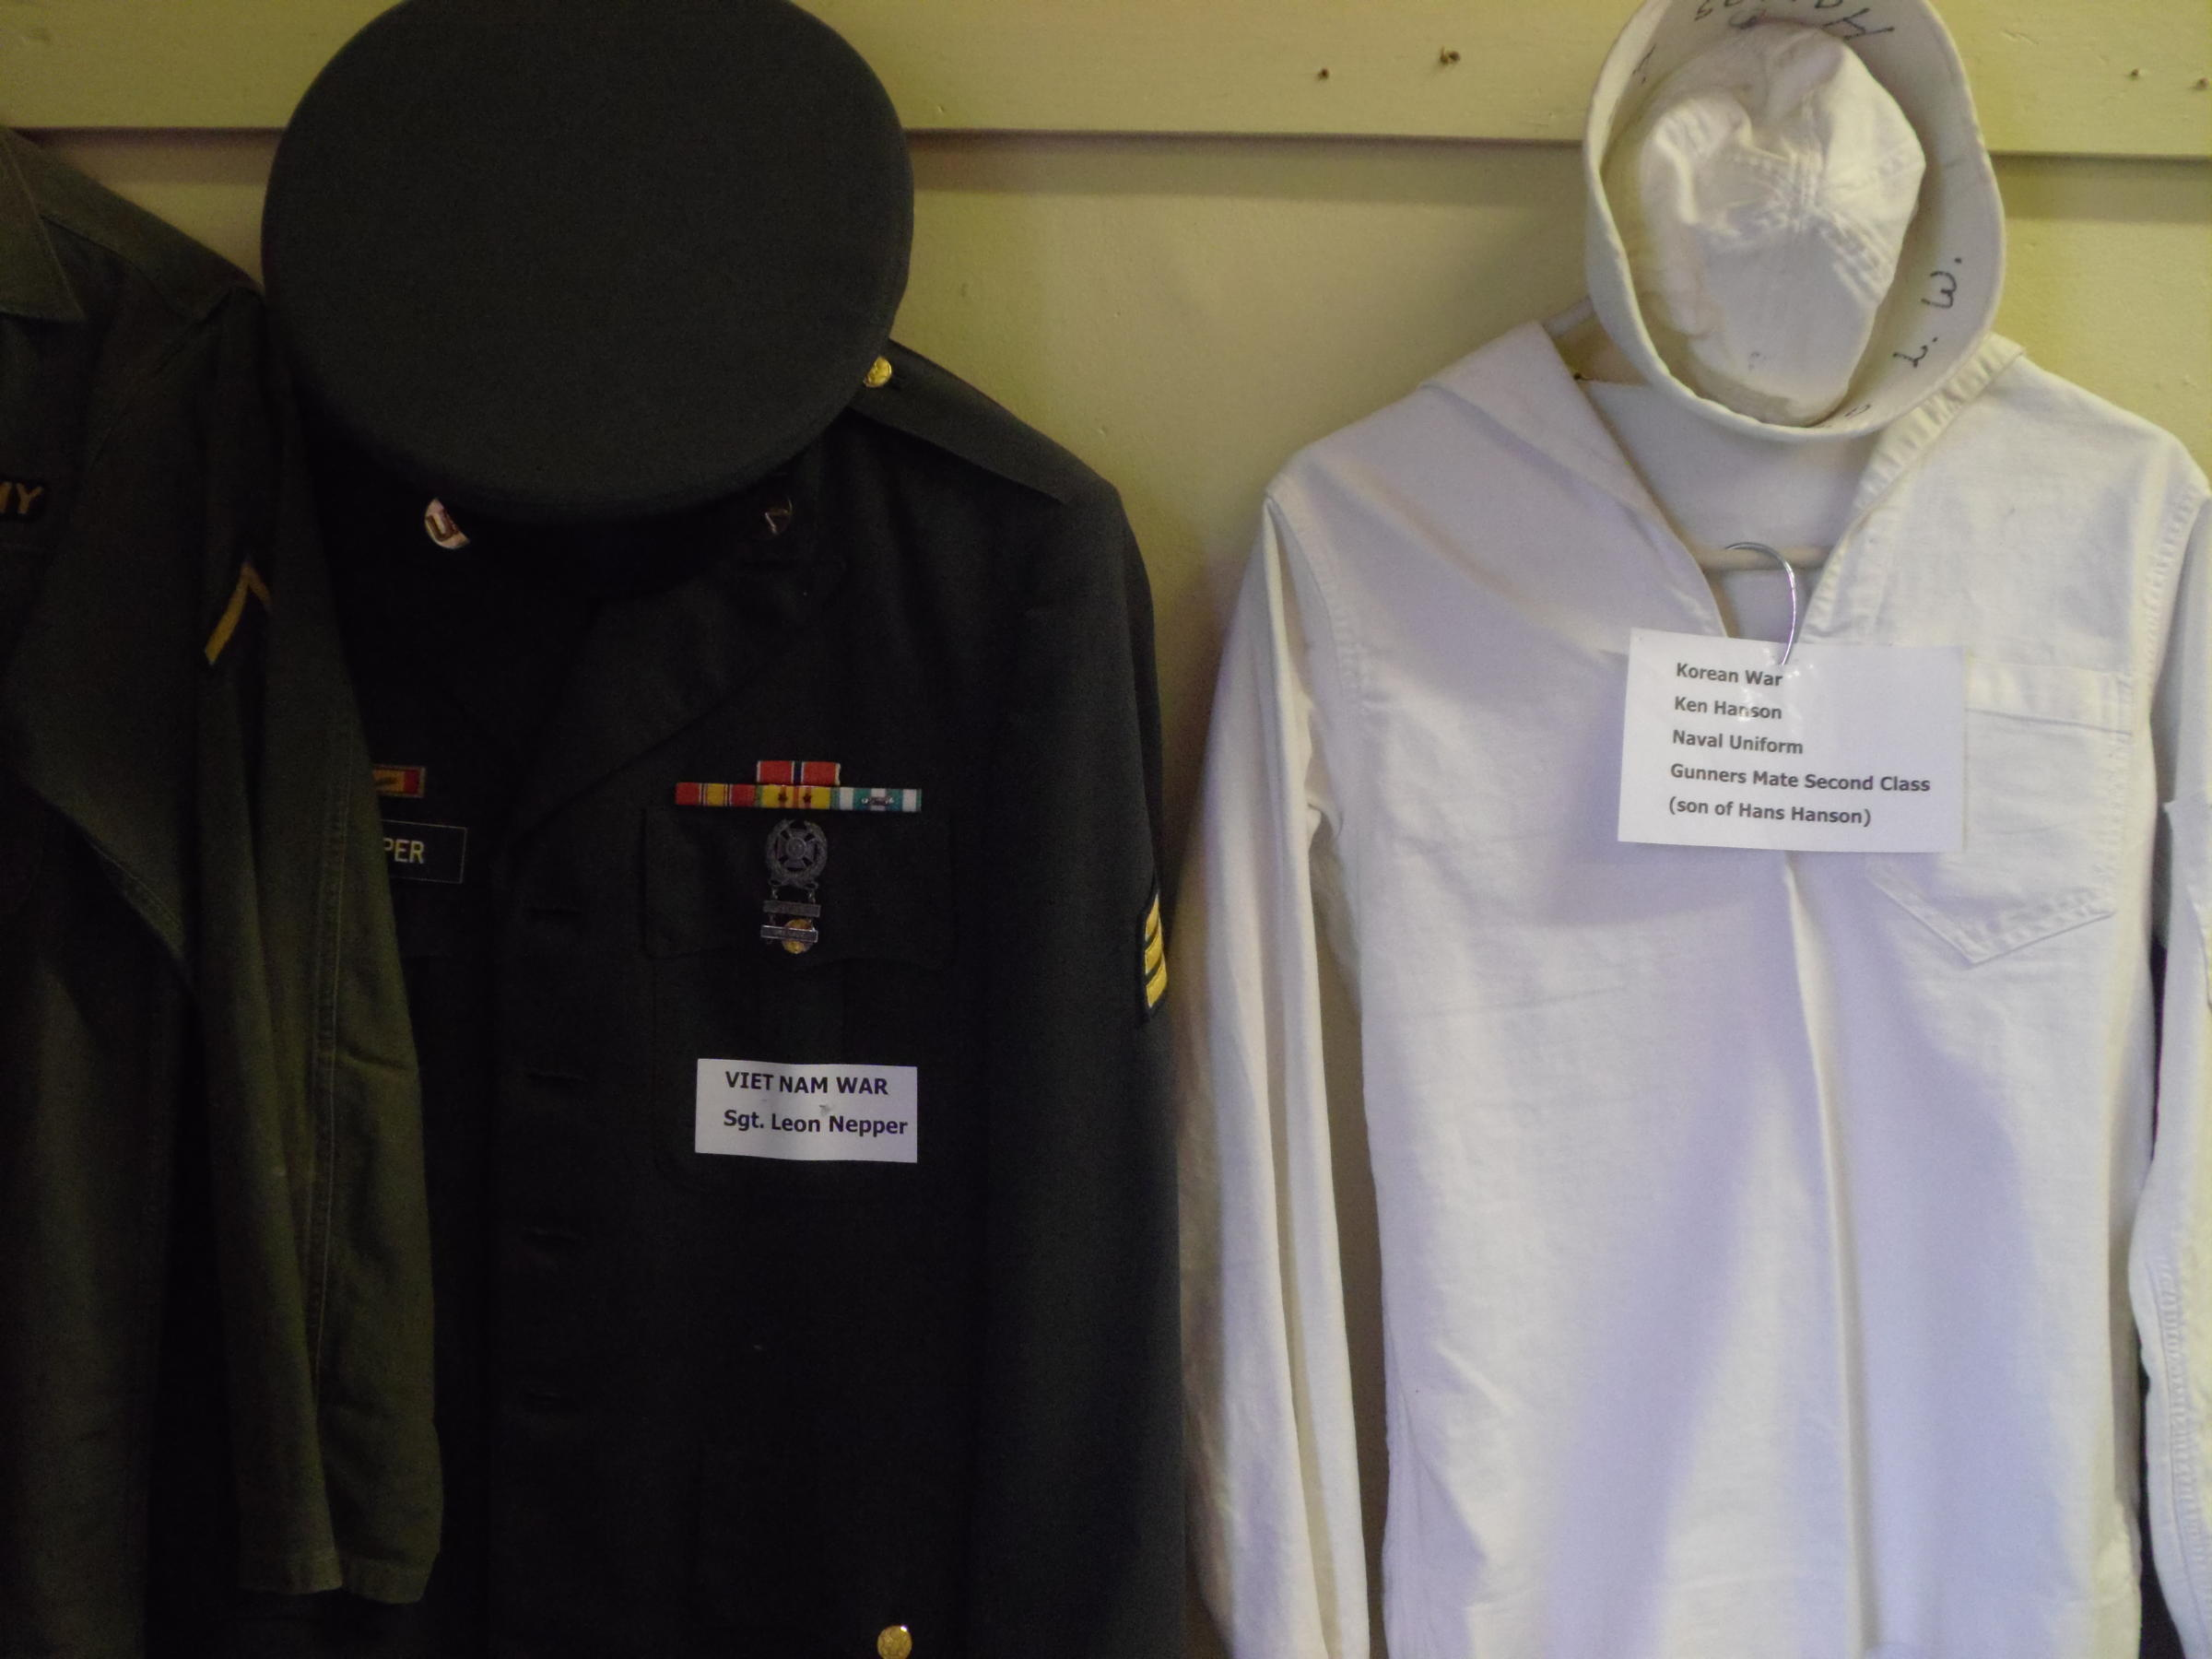 240 Years Of Military Uniform History In Custer | SDPB Radio